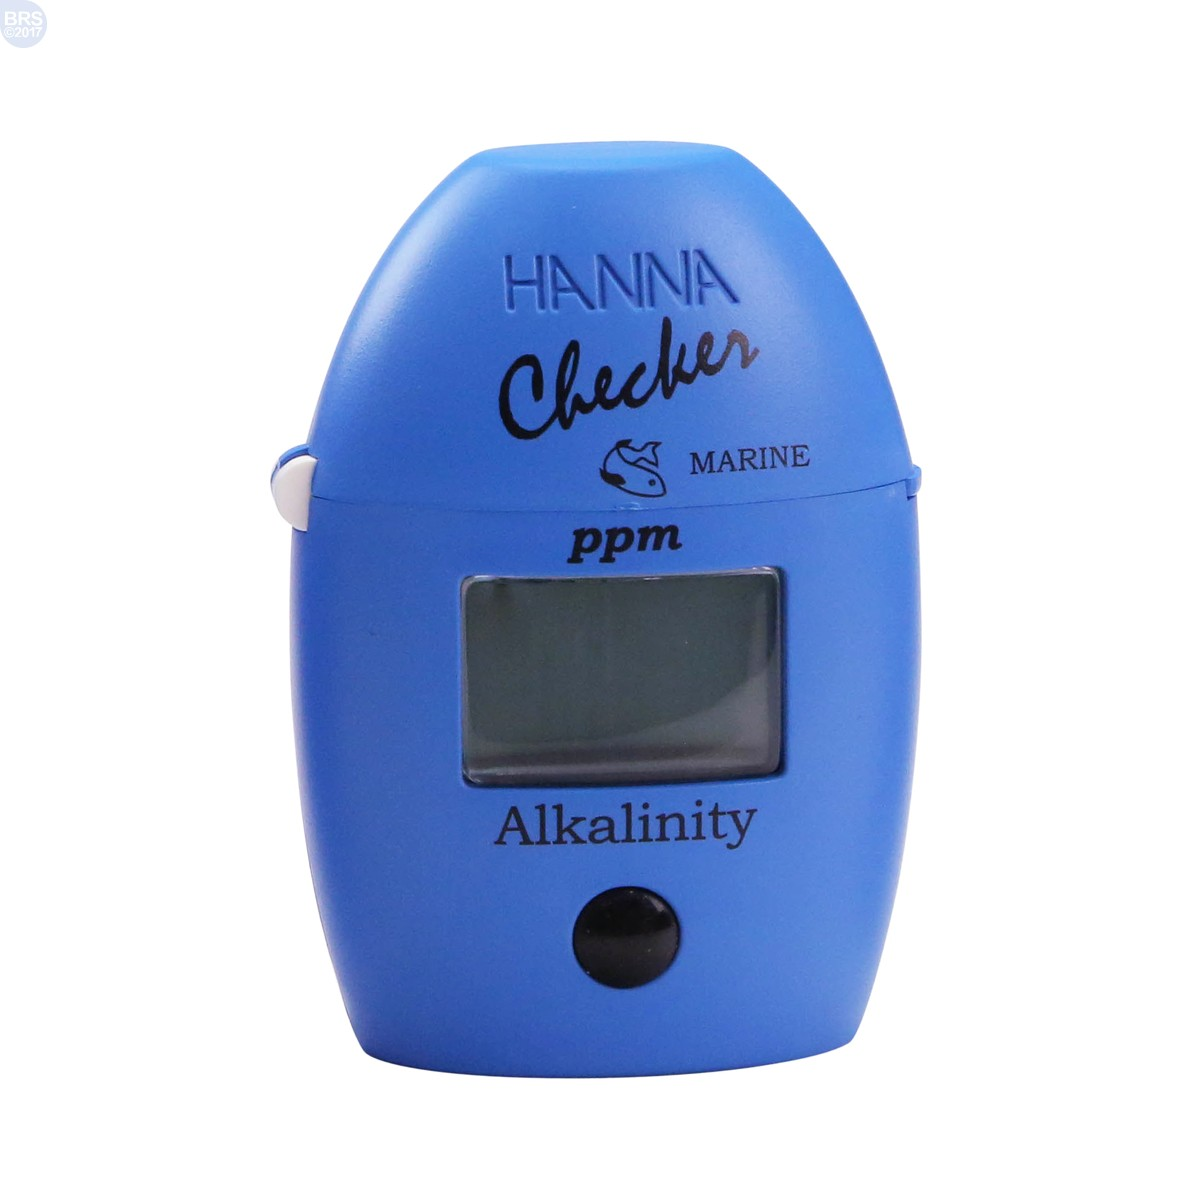 Hanna Checker Alkalinity Colorimeter Bulk Reef Supply